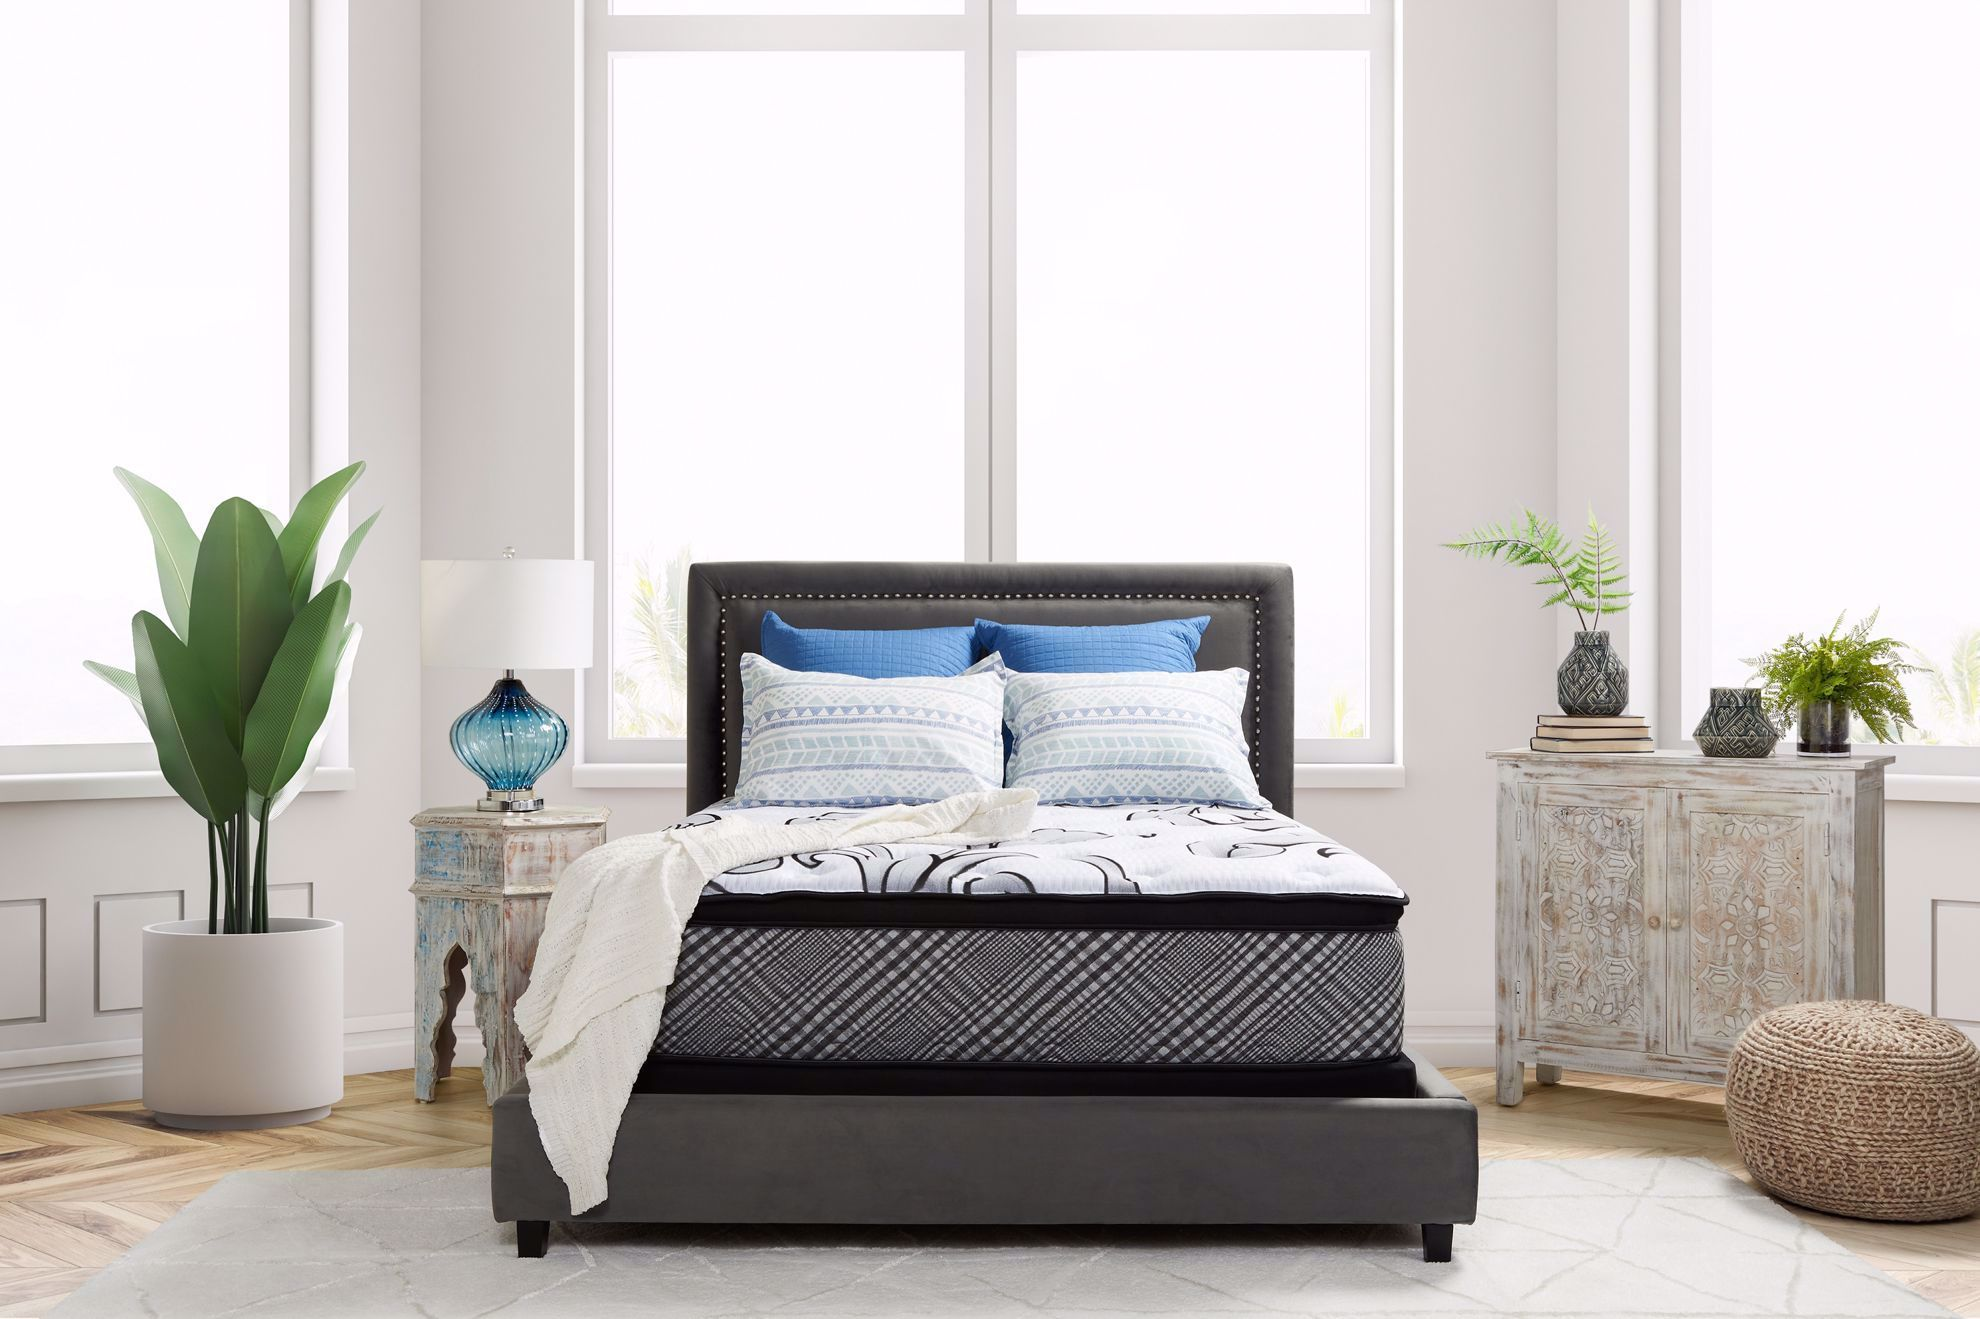 Picture of Restonic Darlington EuroTop Twin XL Mattress